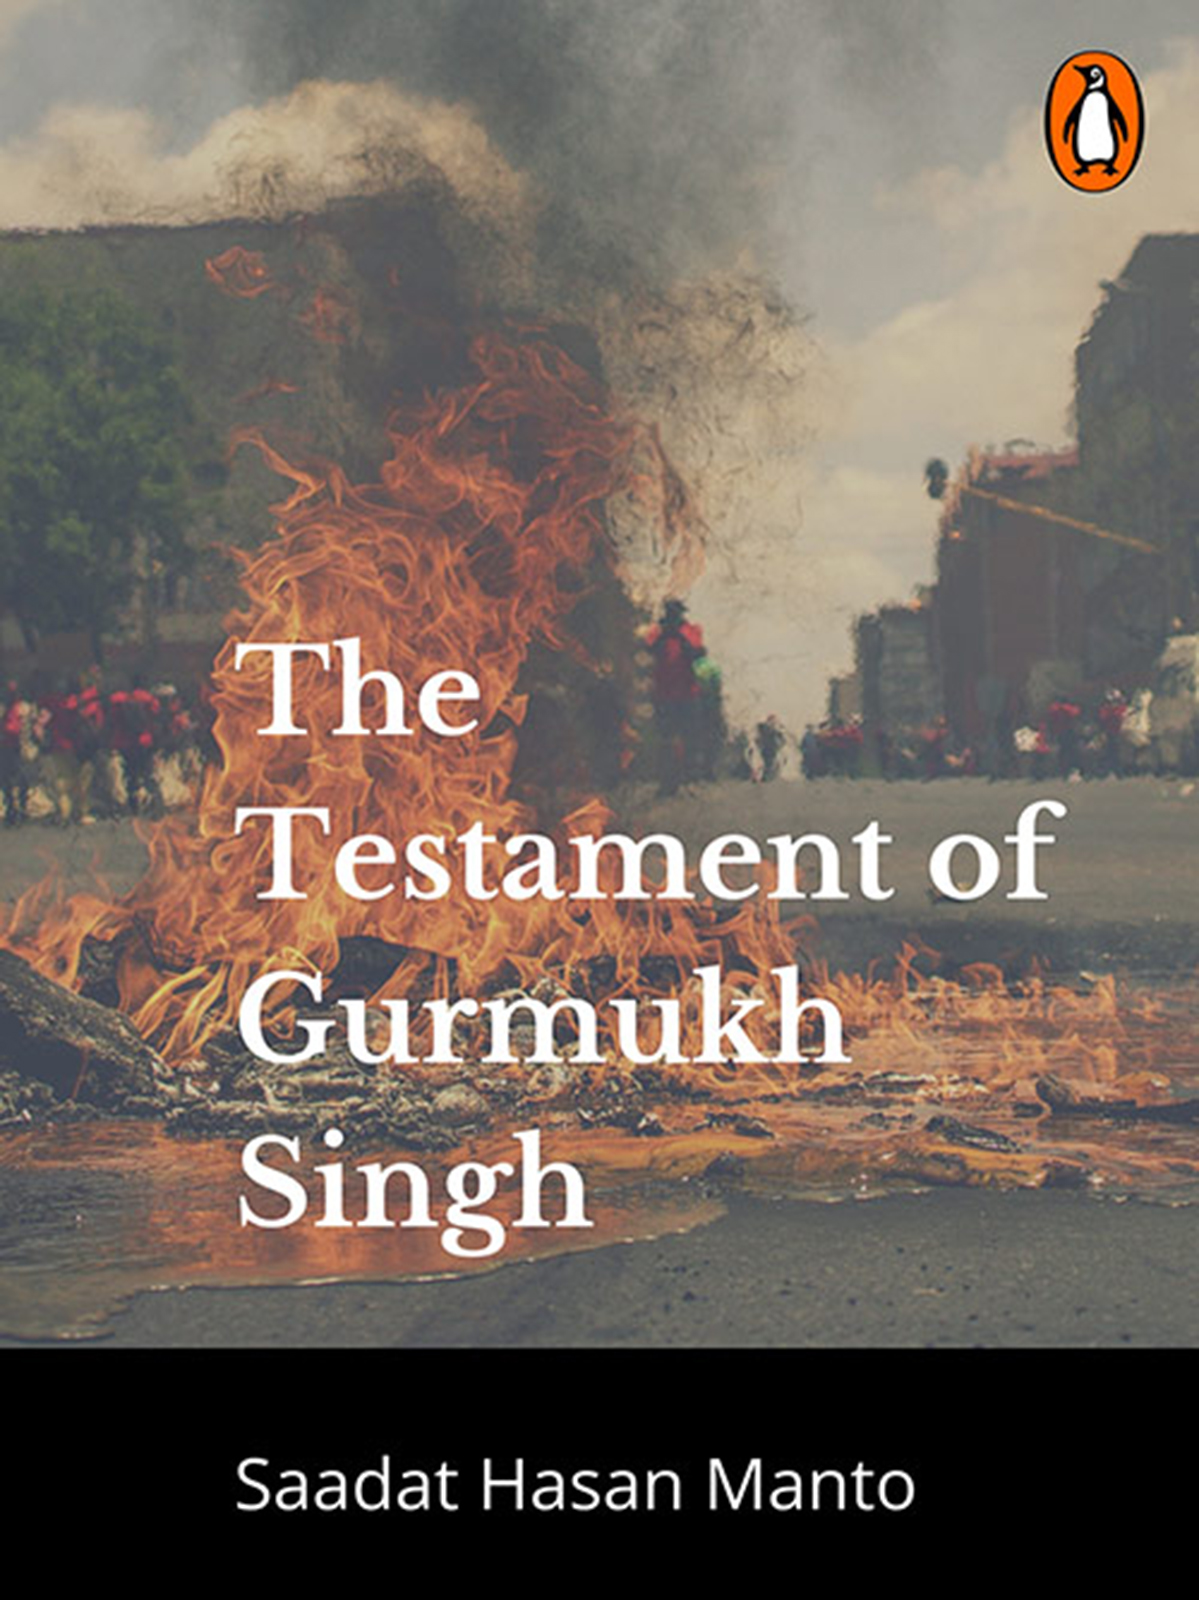 The Testament of Gurmukh Singh